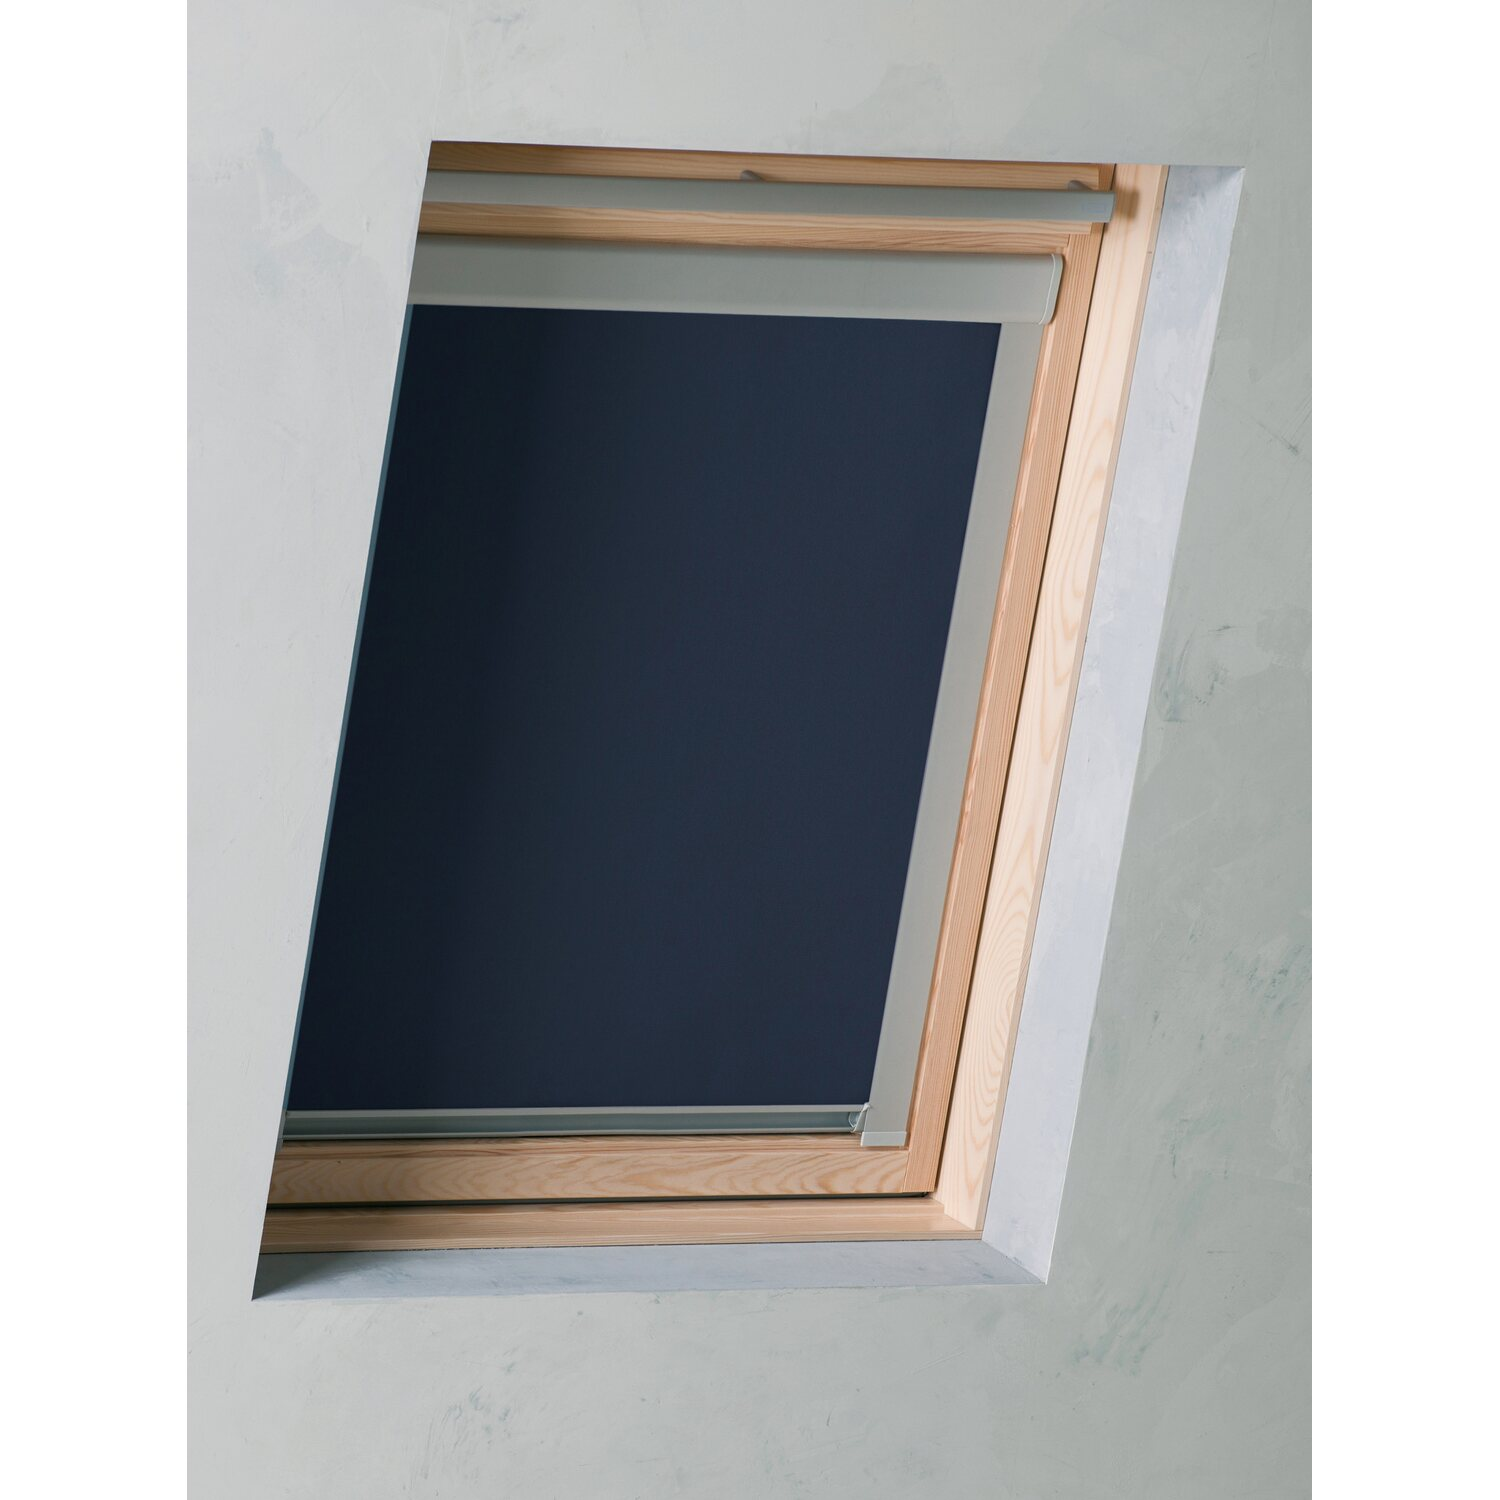 velux dachfenster rollo aussen trendy faltrollos fr dachfenster with velux dachfenster rollo. Black Bedroom Furniture Sets. Home Design Ideas